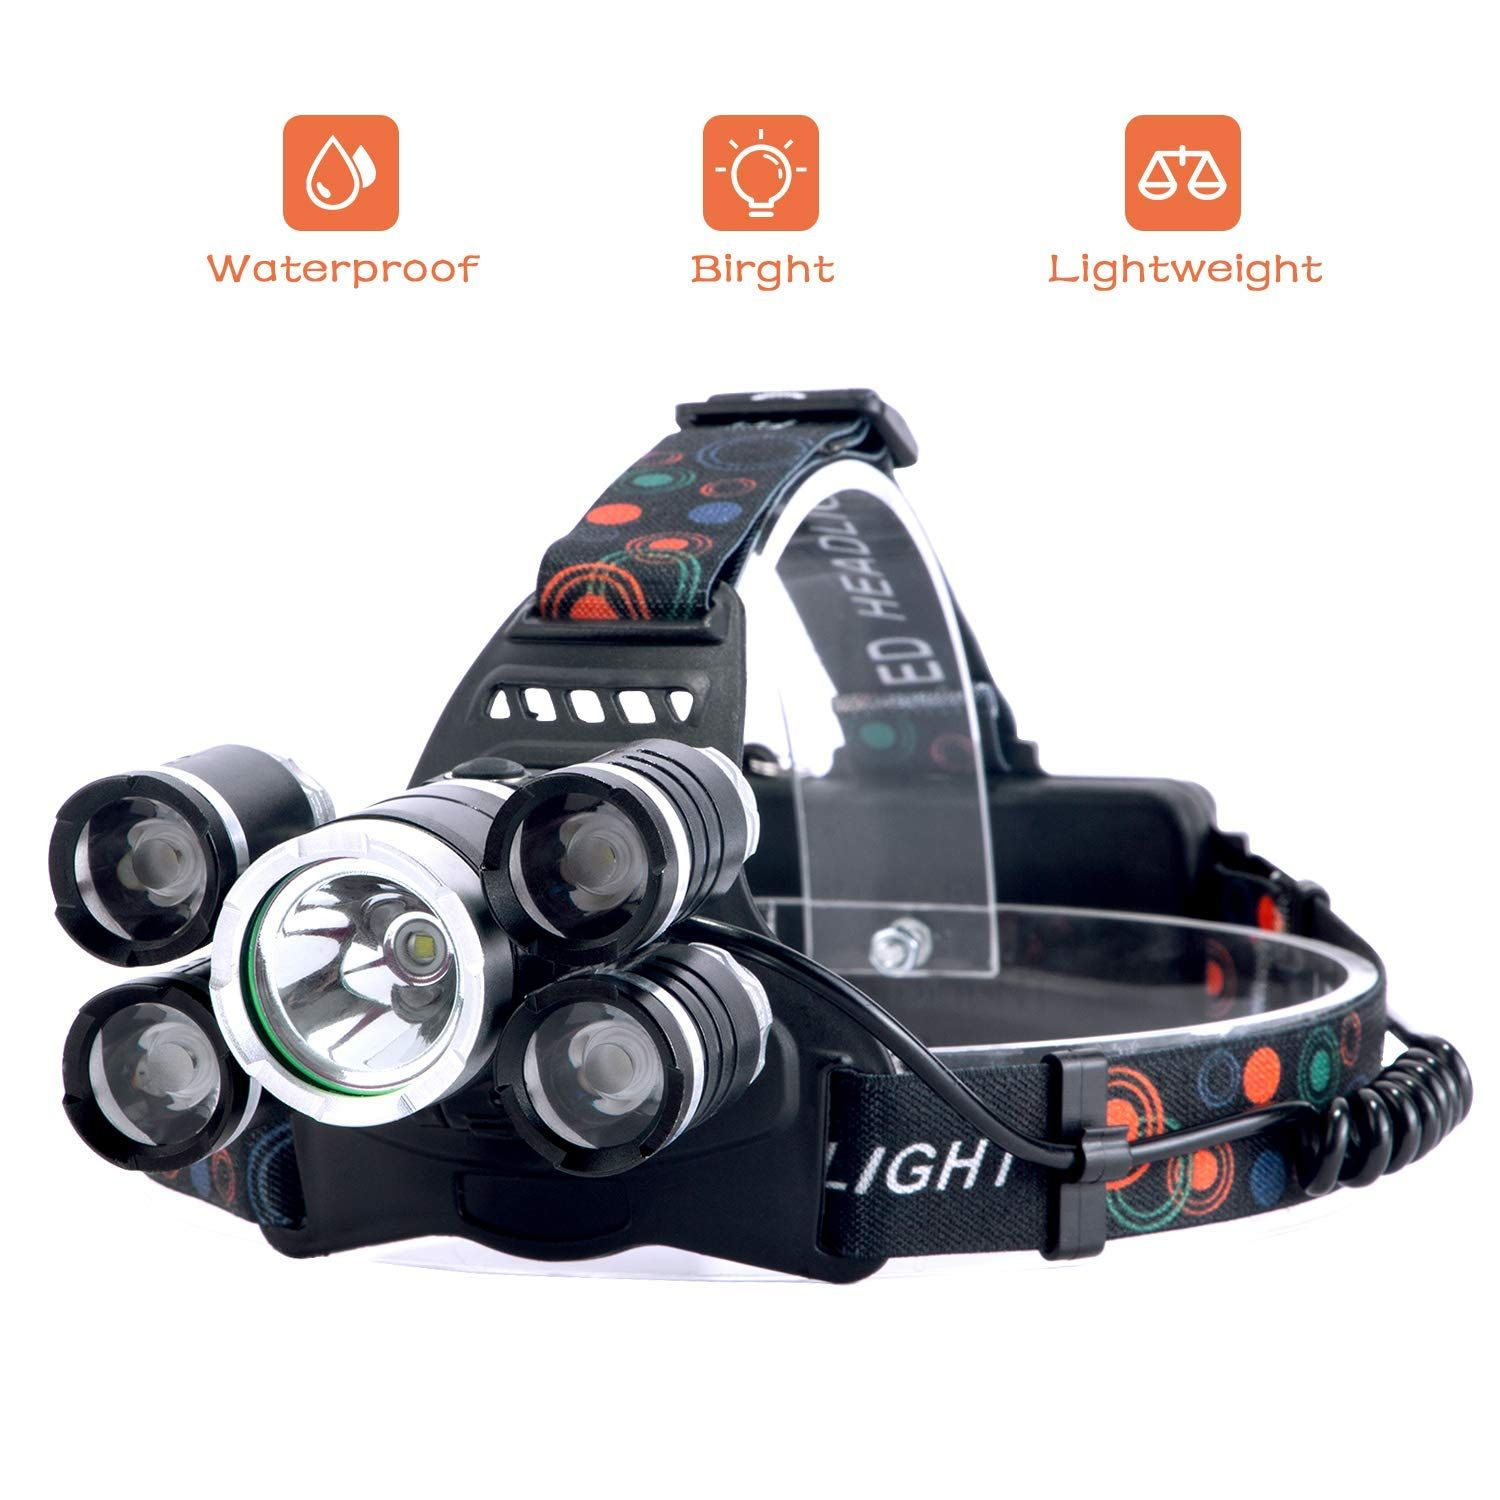 Headlamp Rechargeable Led Headlight 4 Modes Led Work Headlight Waterproof Head Torch With Rechargeable Batteri Flashlight Charger Car Rechargeable Batteries